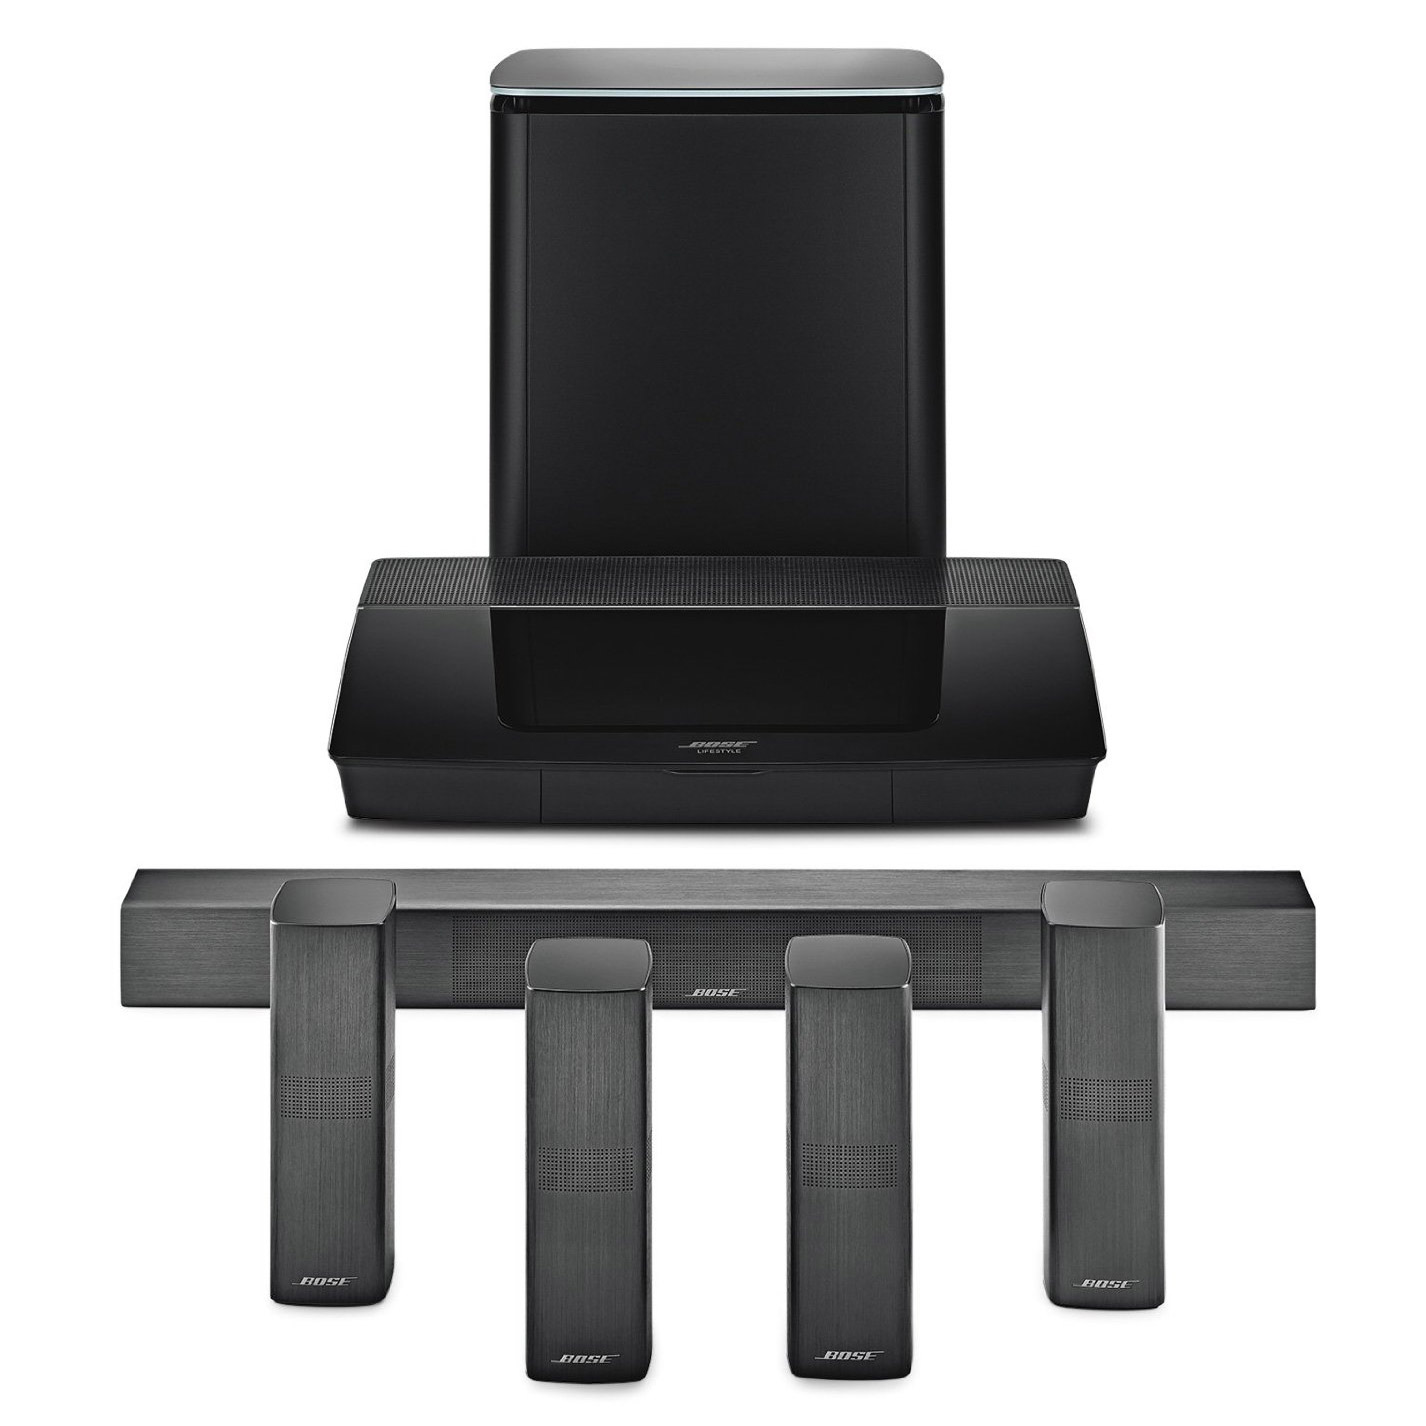 Bose LS 650 BLK Lifestyle 650 Home Entertainment System in Black